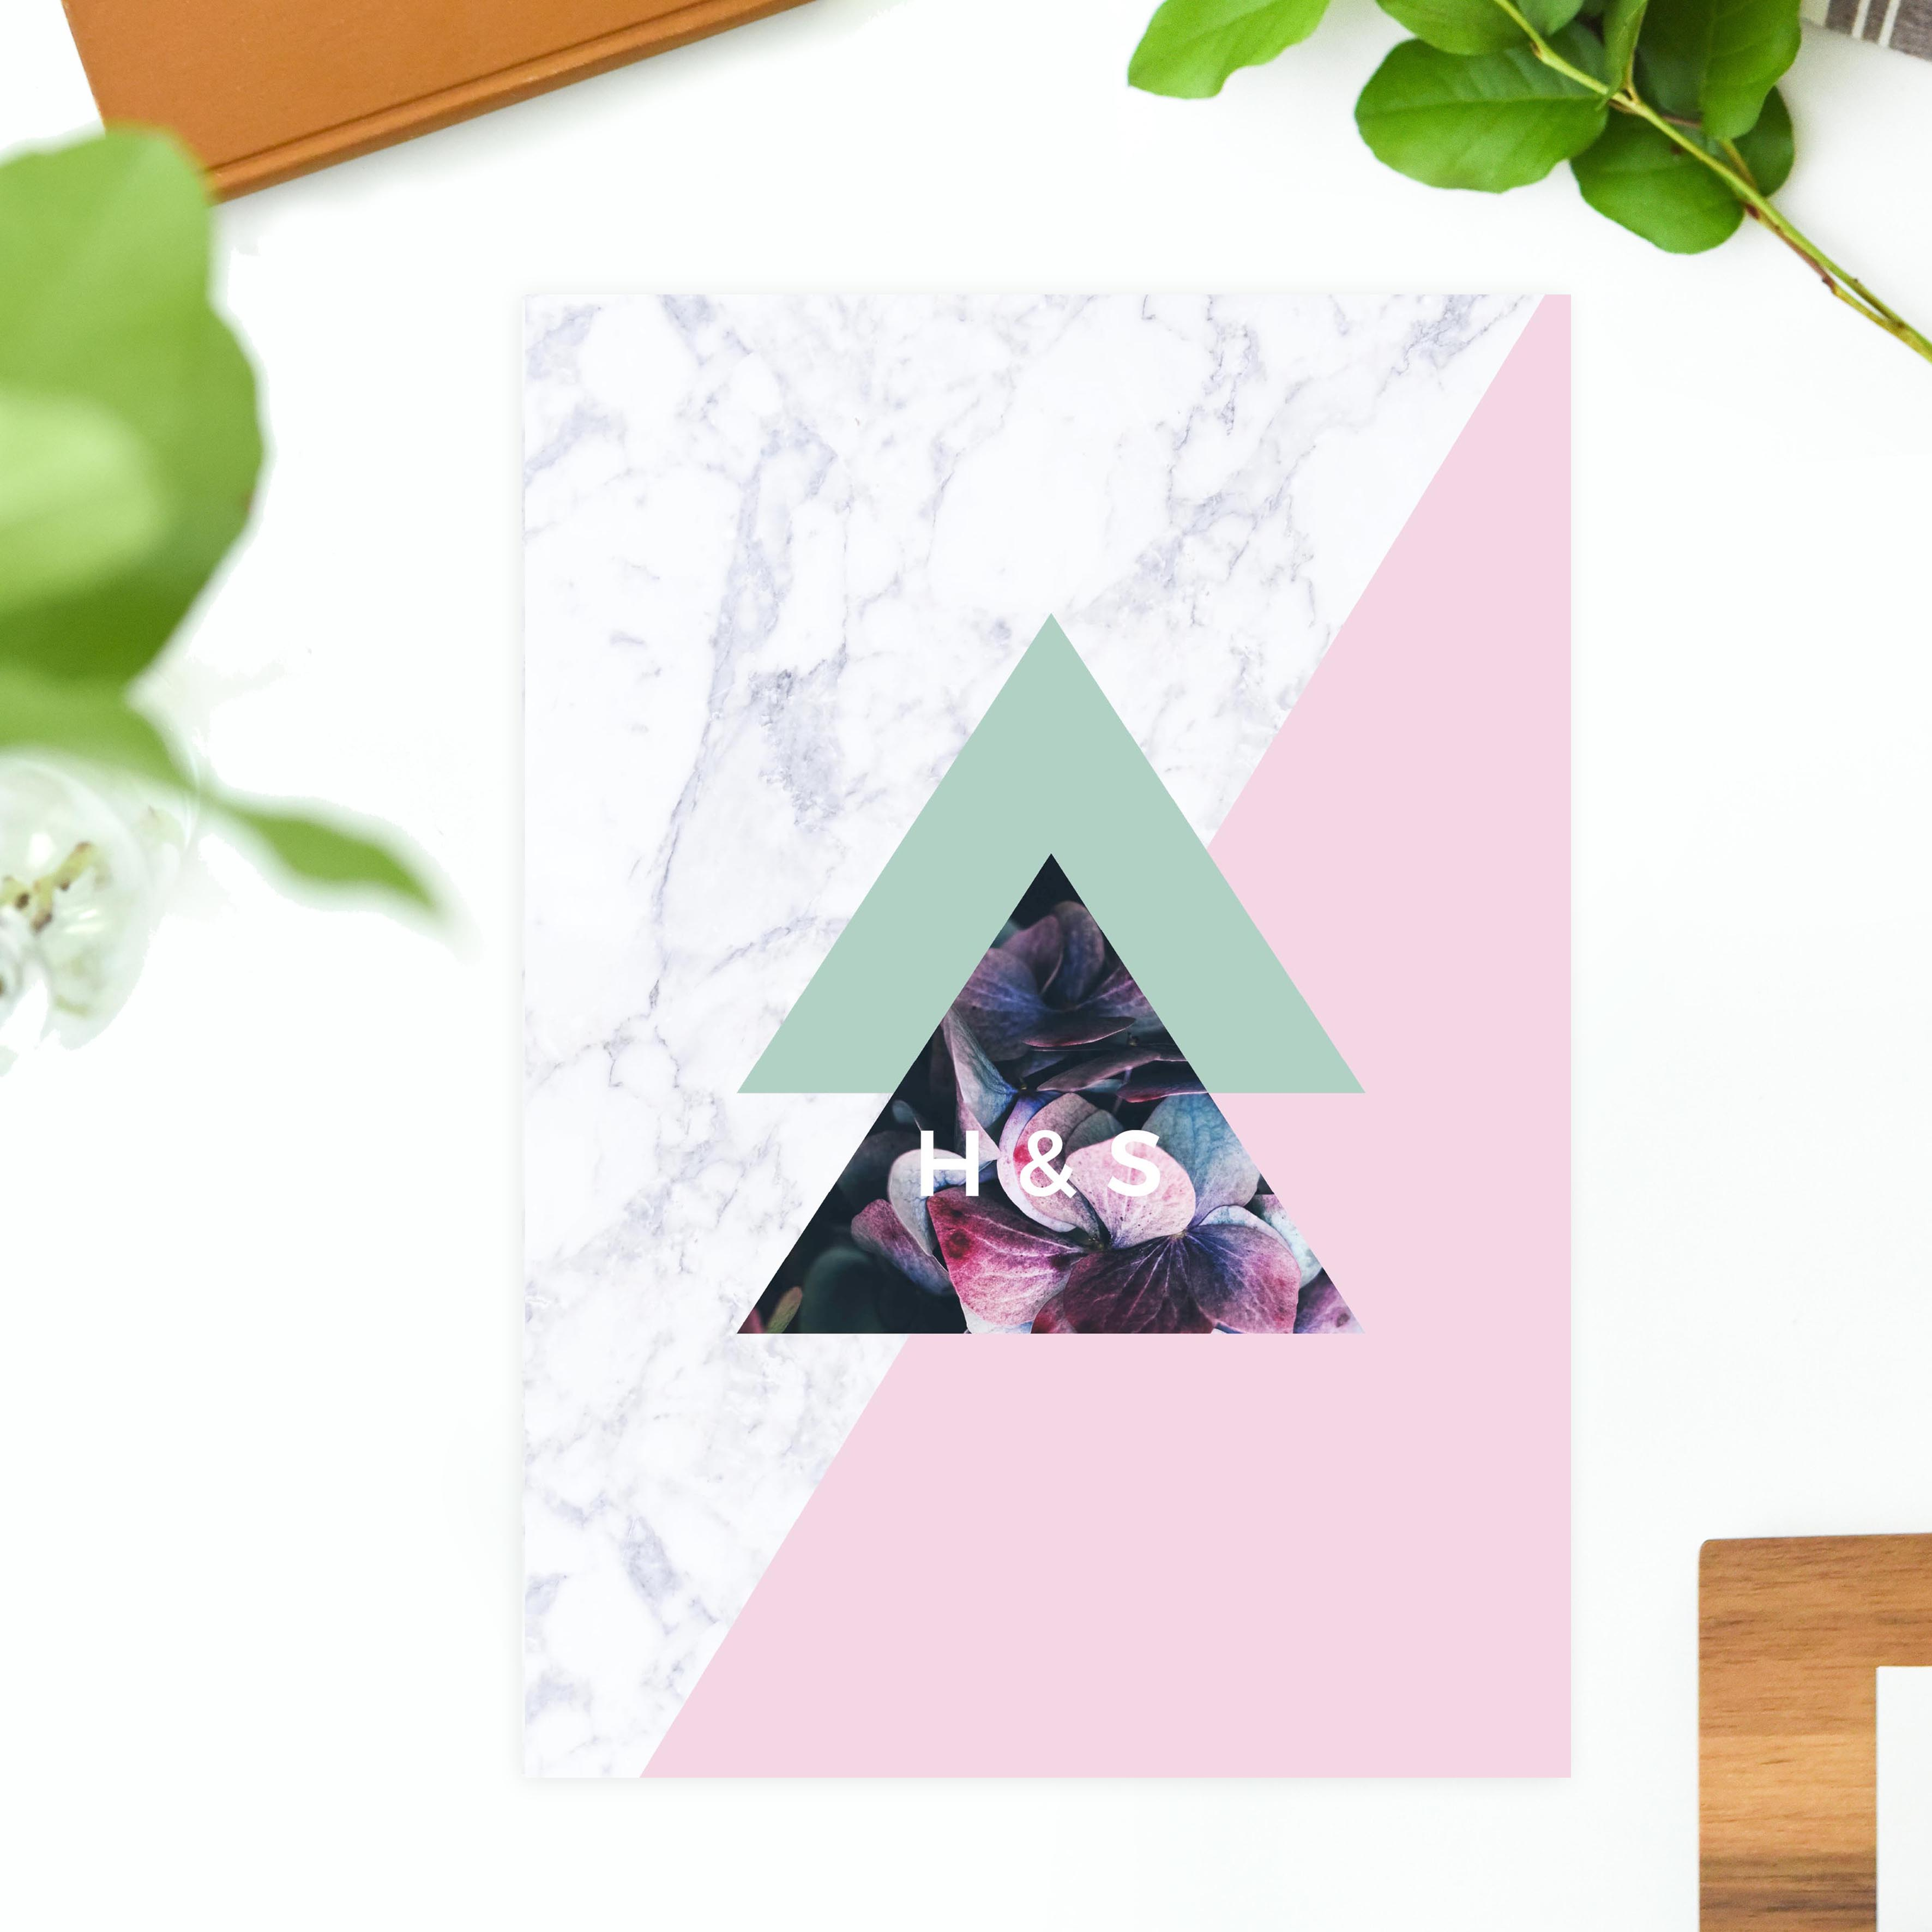 Modern Geometric Marble Hydrangea Floral Wedding Invitations Pink Purple Green grey Chic Luxe Wedding Invites United States Australia New Zealand Sydney Melbourne Perth Sail and Swan